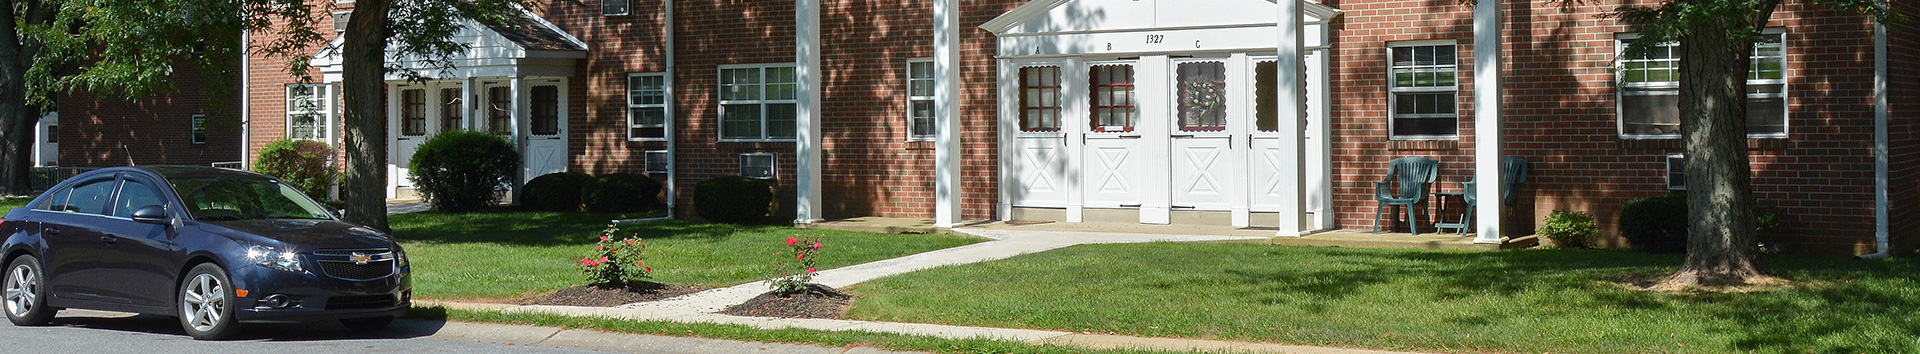 Room Outside view of Manor House Apartments at Manor Communities, Lancaster/Pennsylvania